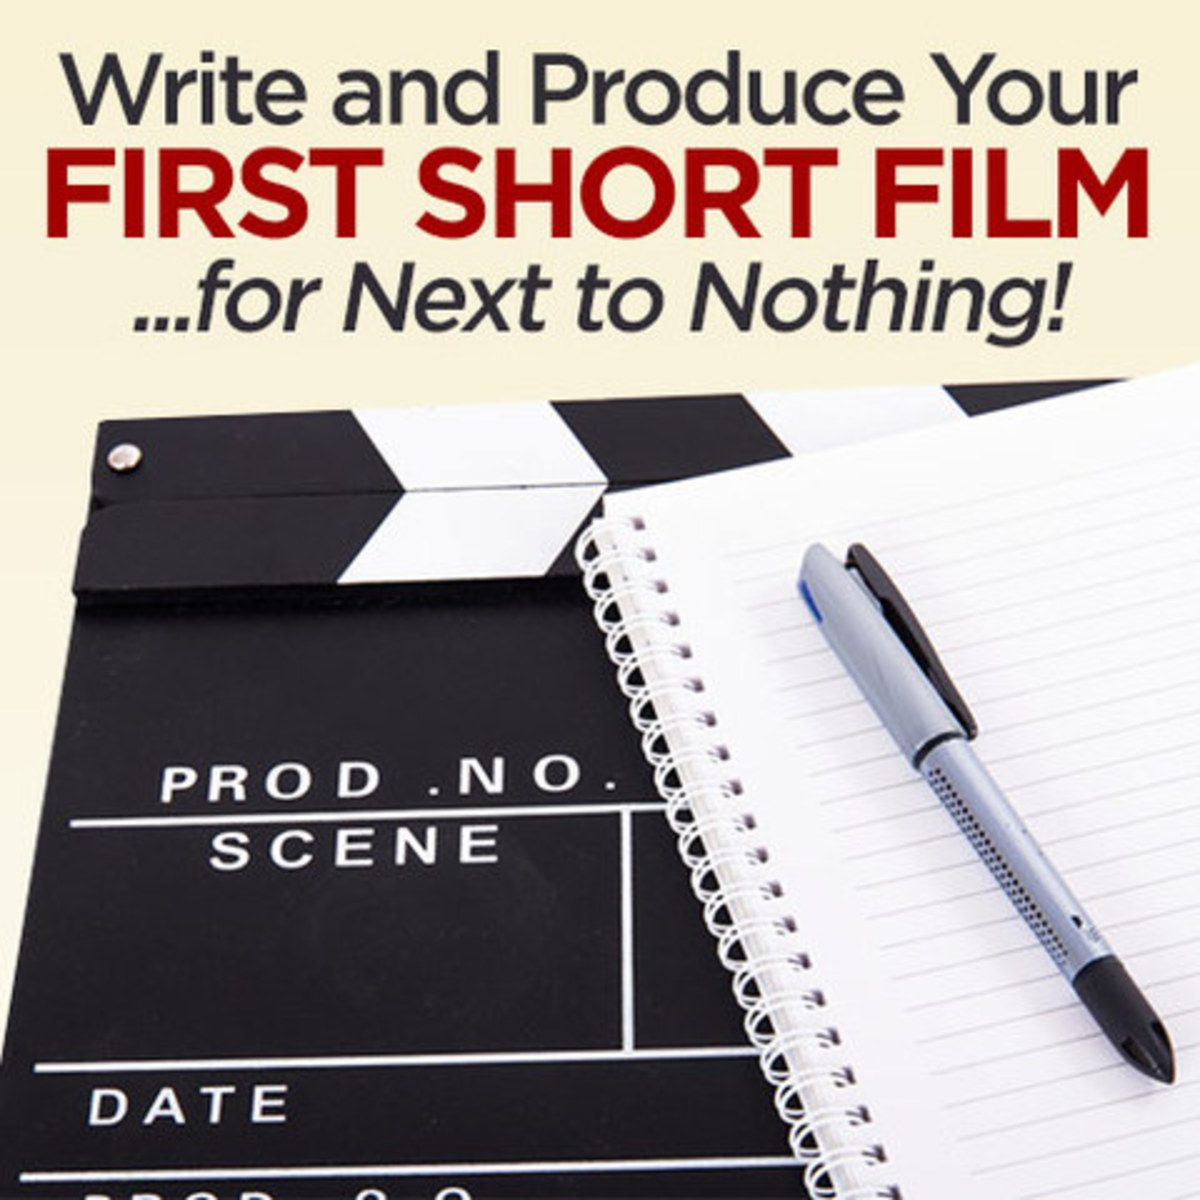 Write and Produce Your First Short Film